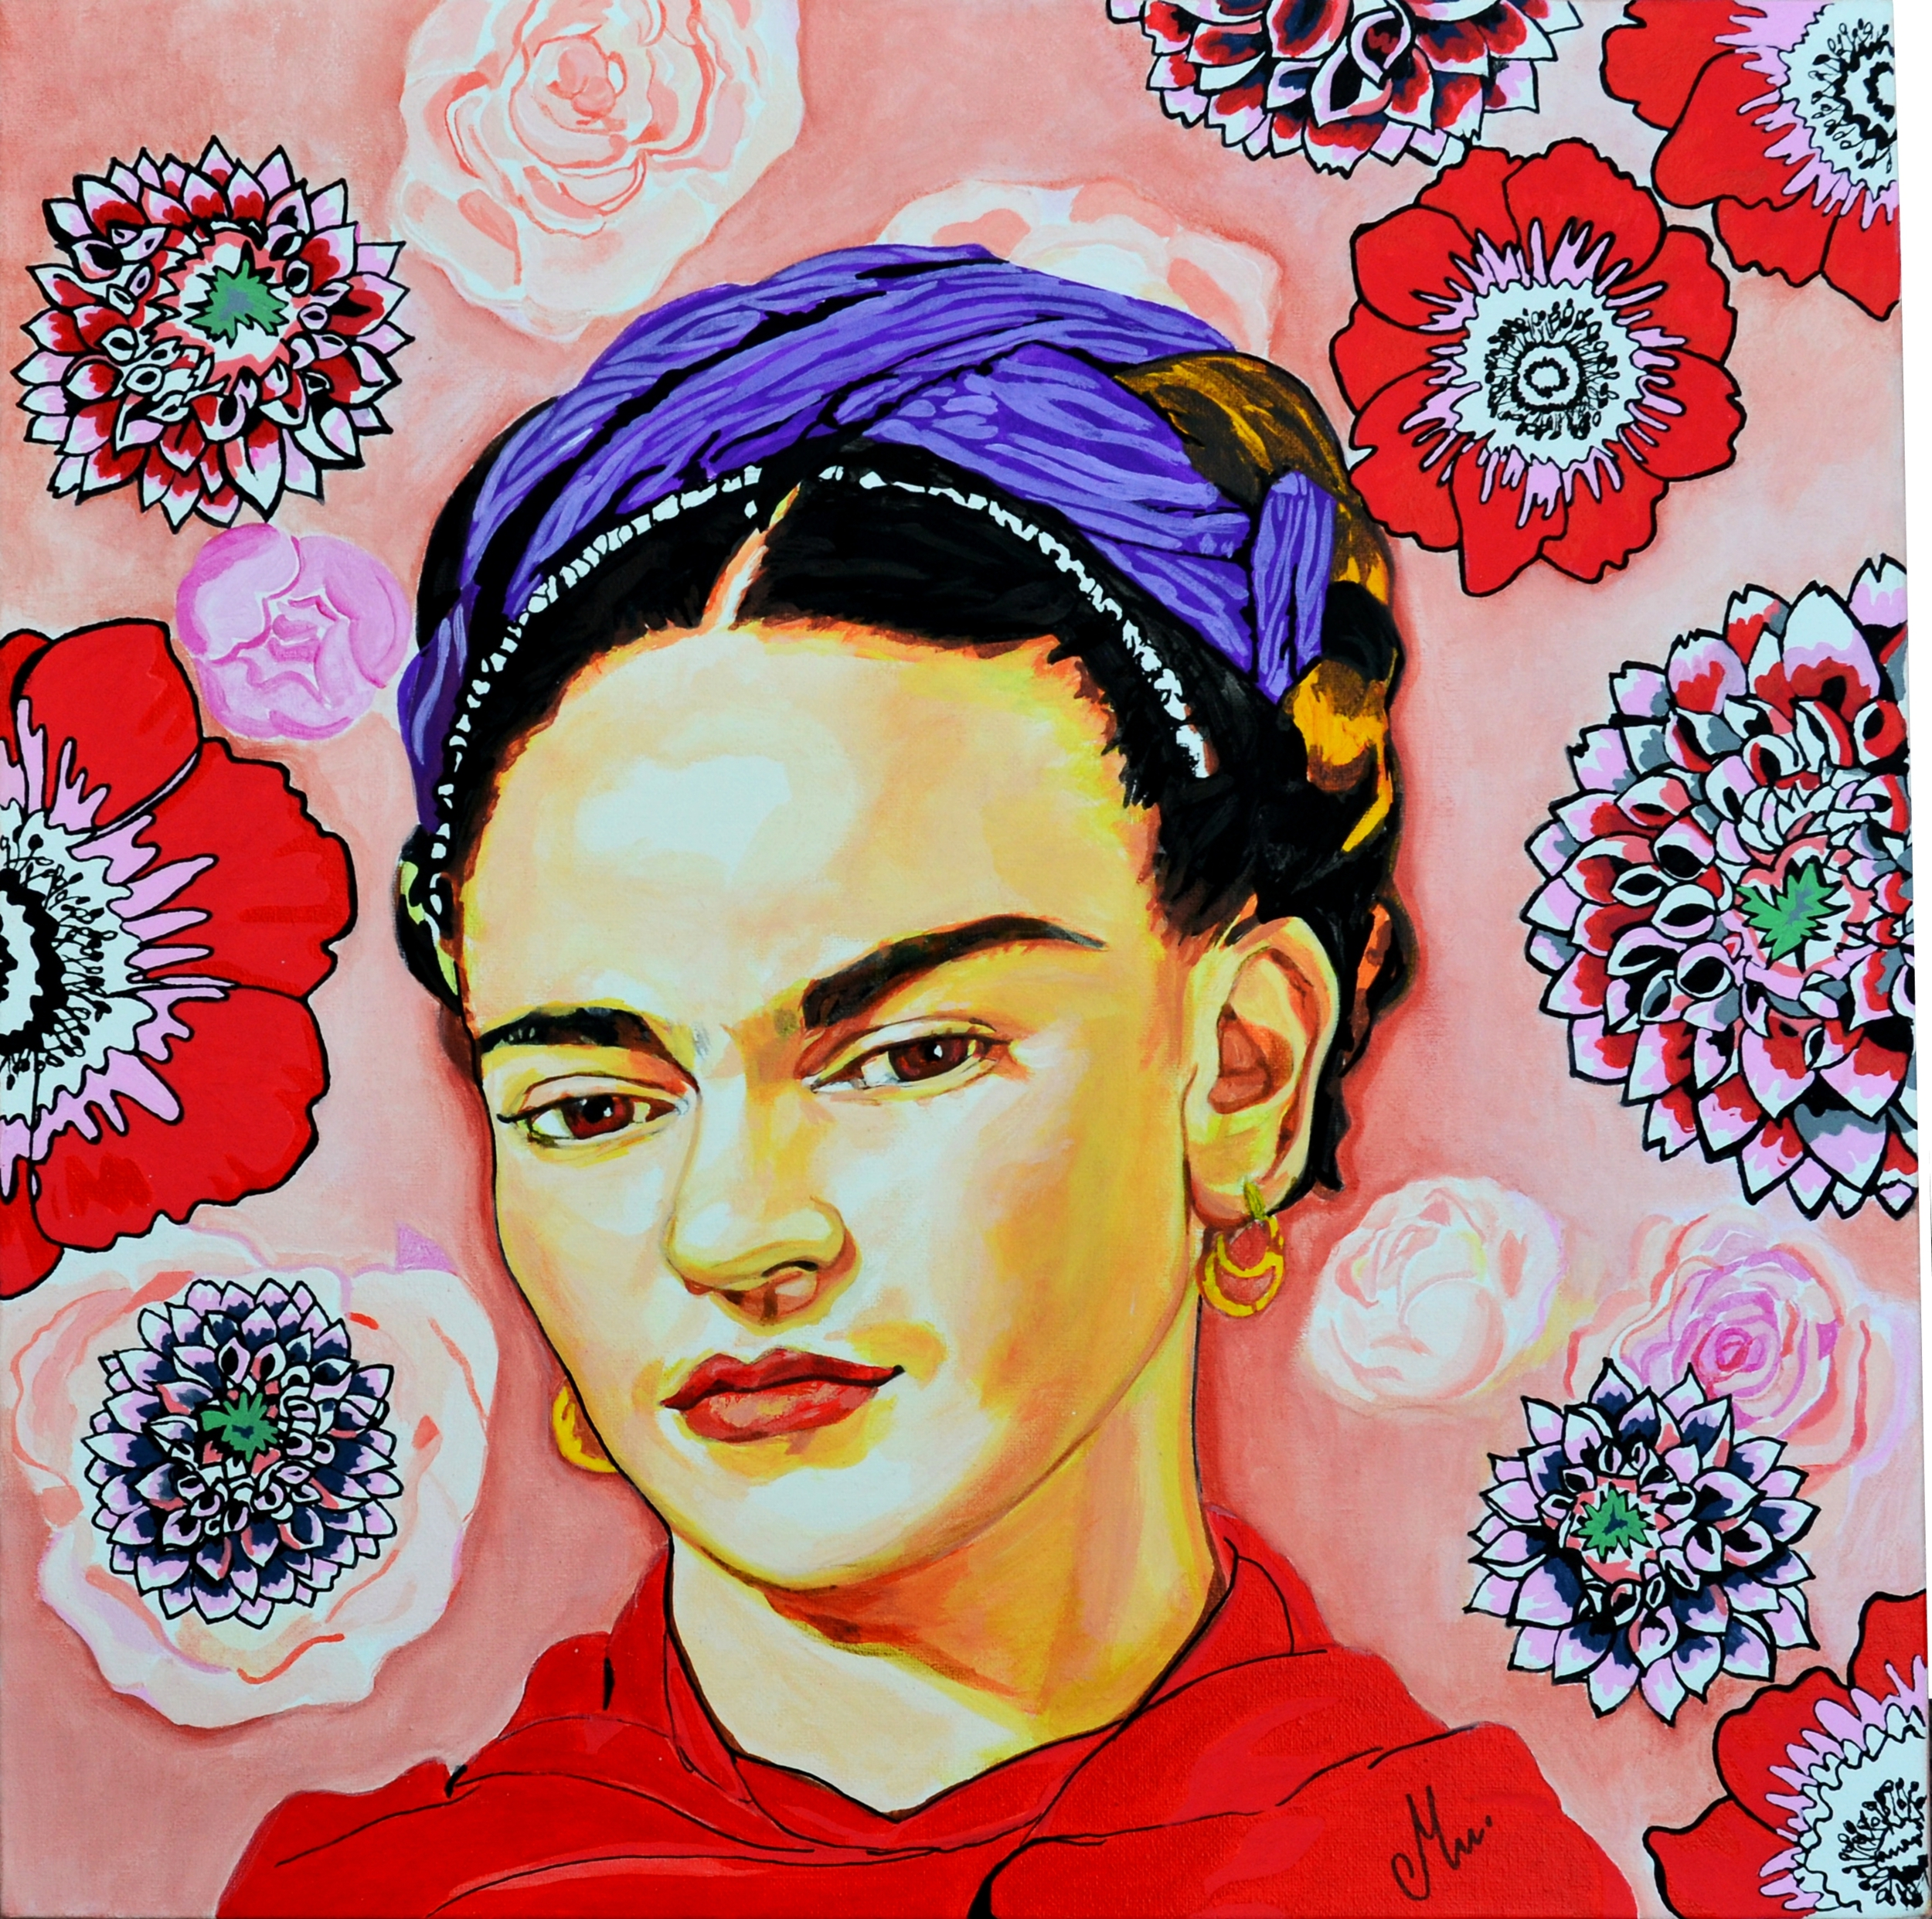 tableau portrait de frida kalho art design contemporain tableau art design abstrait et. Black Bedroom Furniture Sets. Home Design Ideas